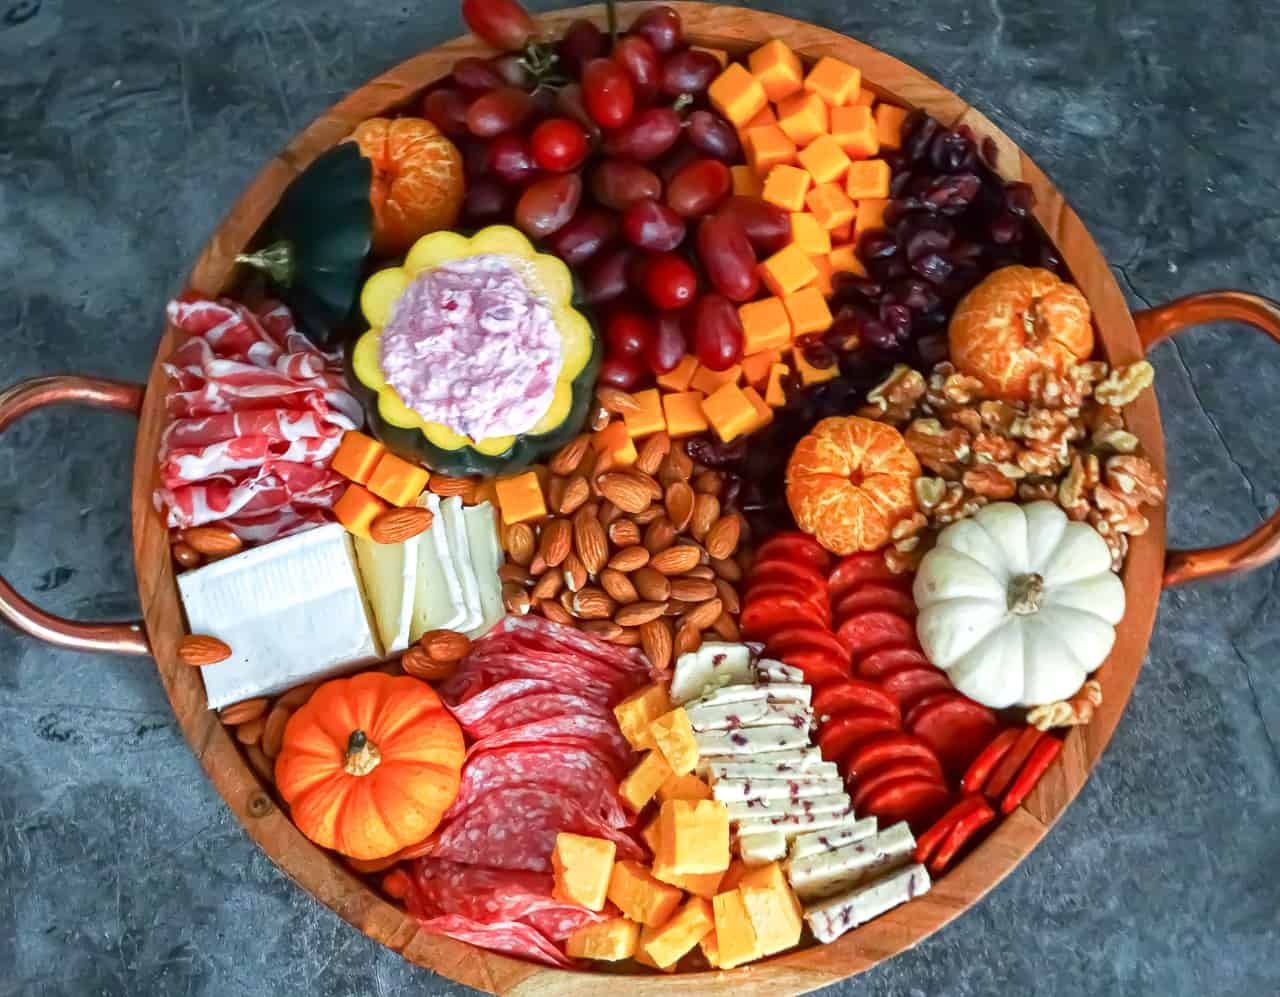 Thanksgiving charcuterie board filled with nuts, meats, cheeses, pumpkins and fruits in vibrat fall colors